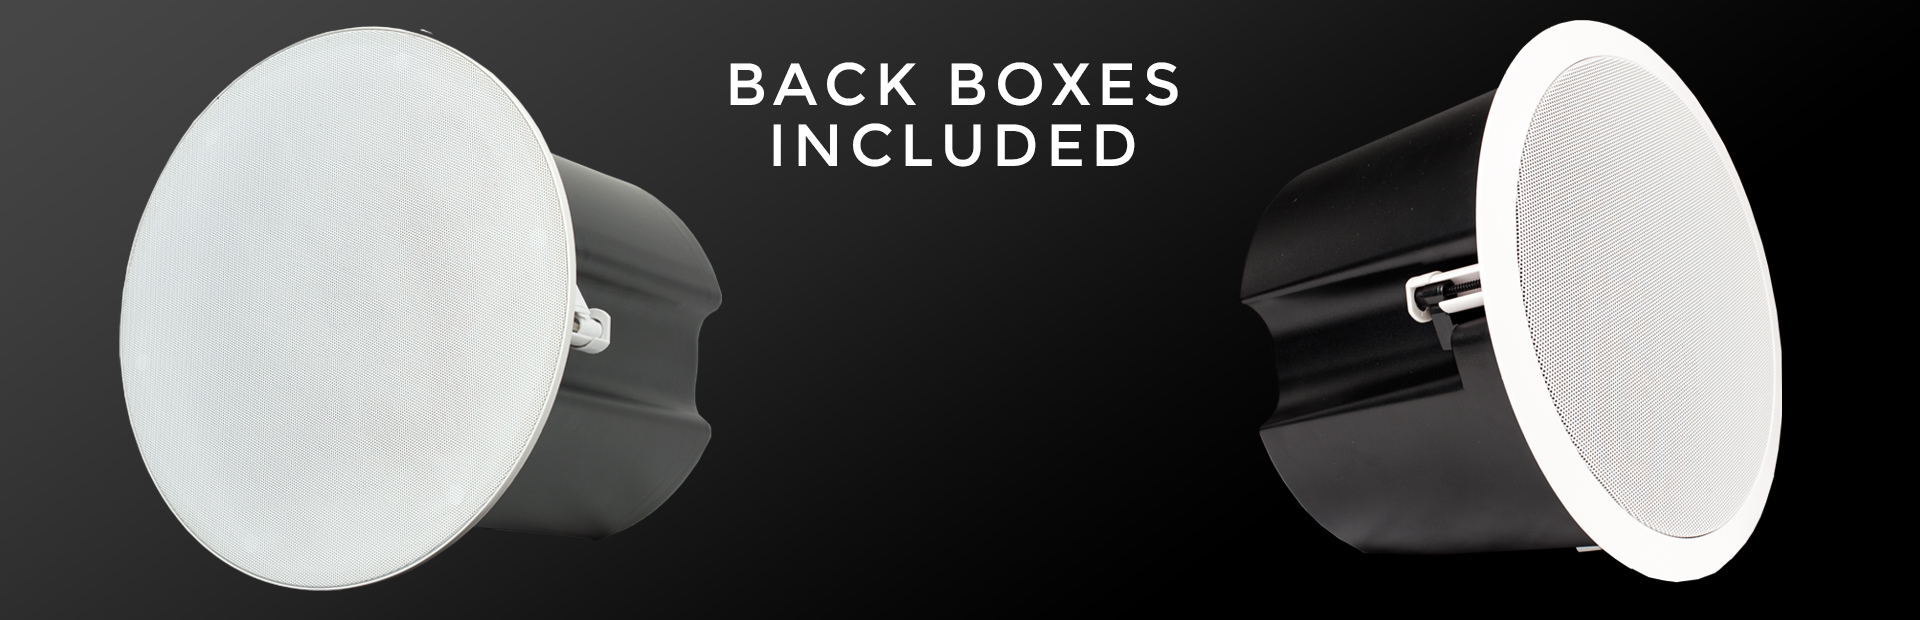 Backboxes included